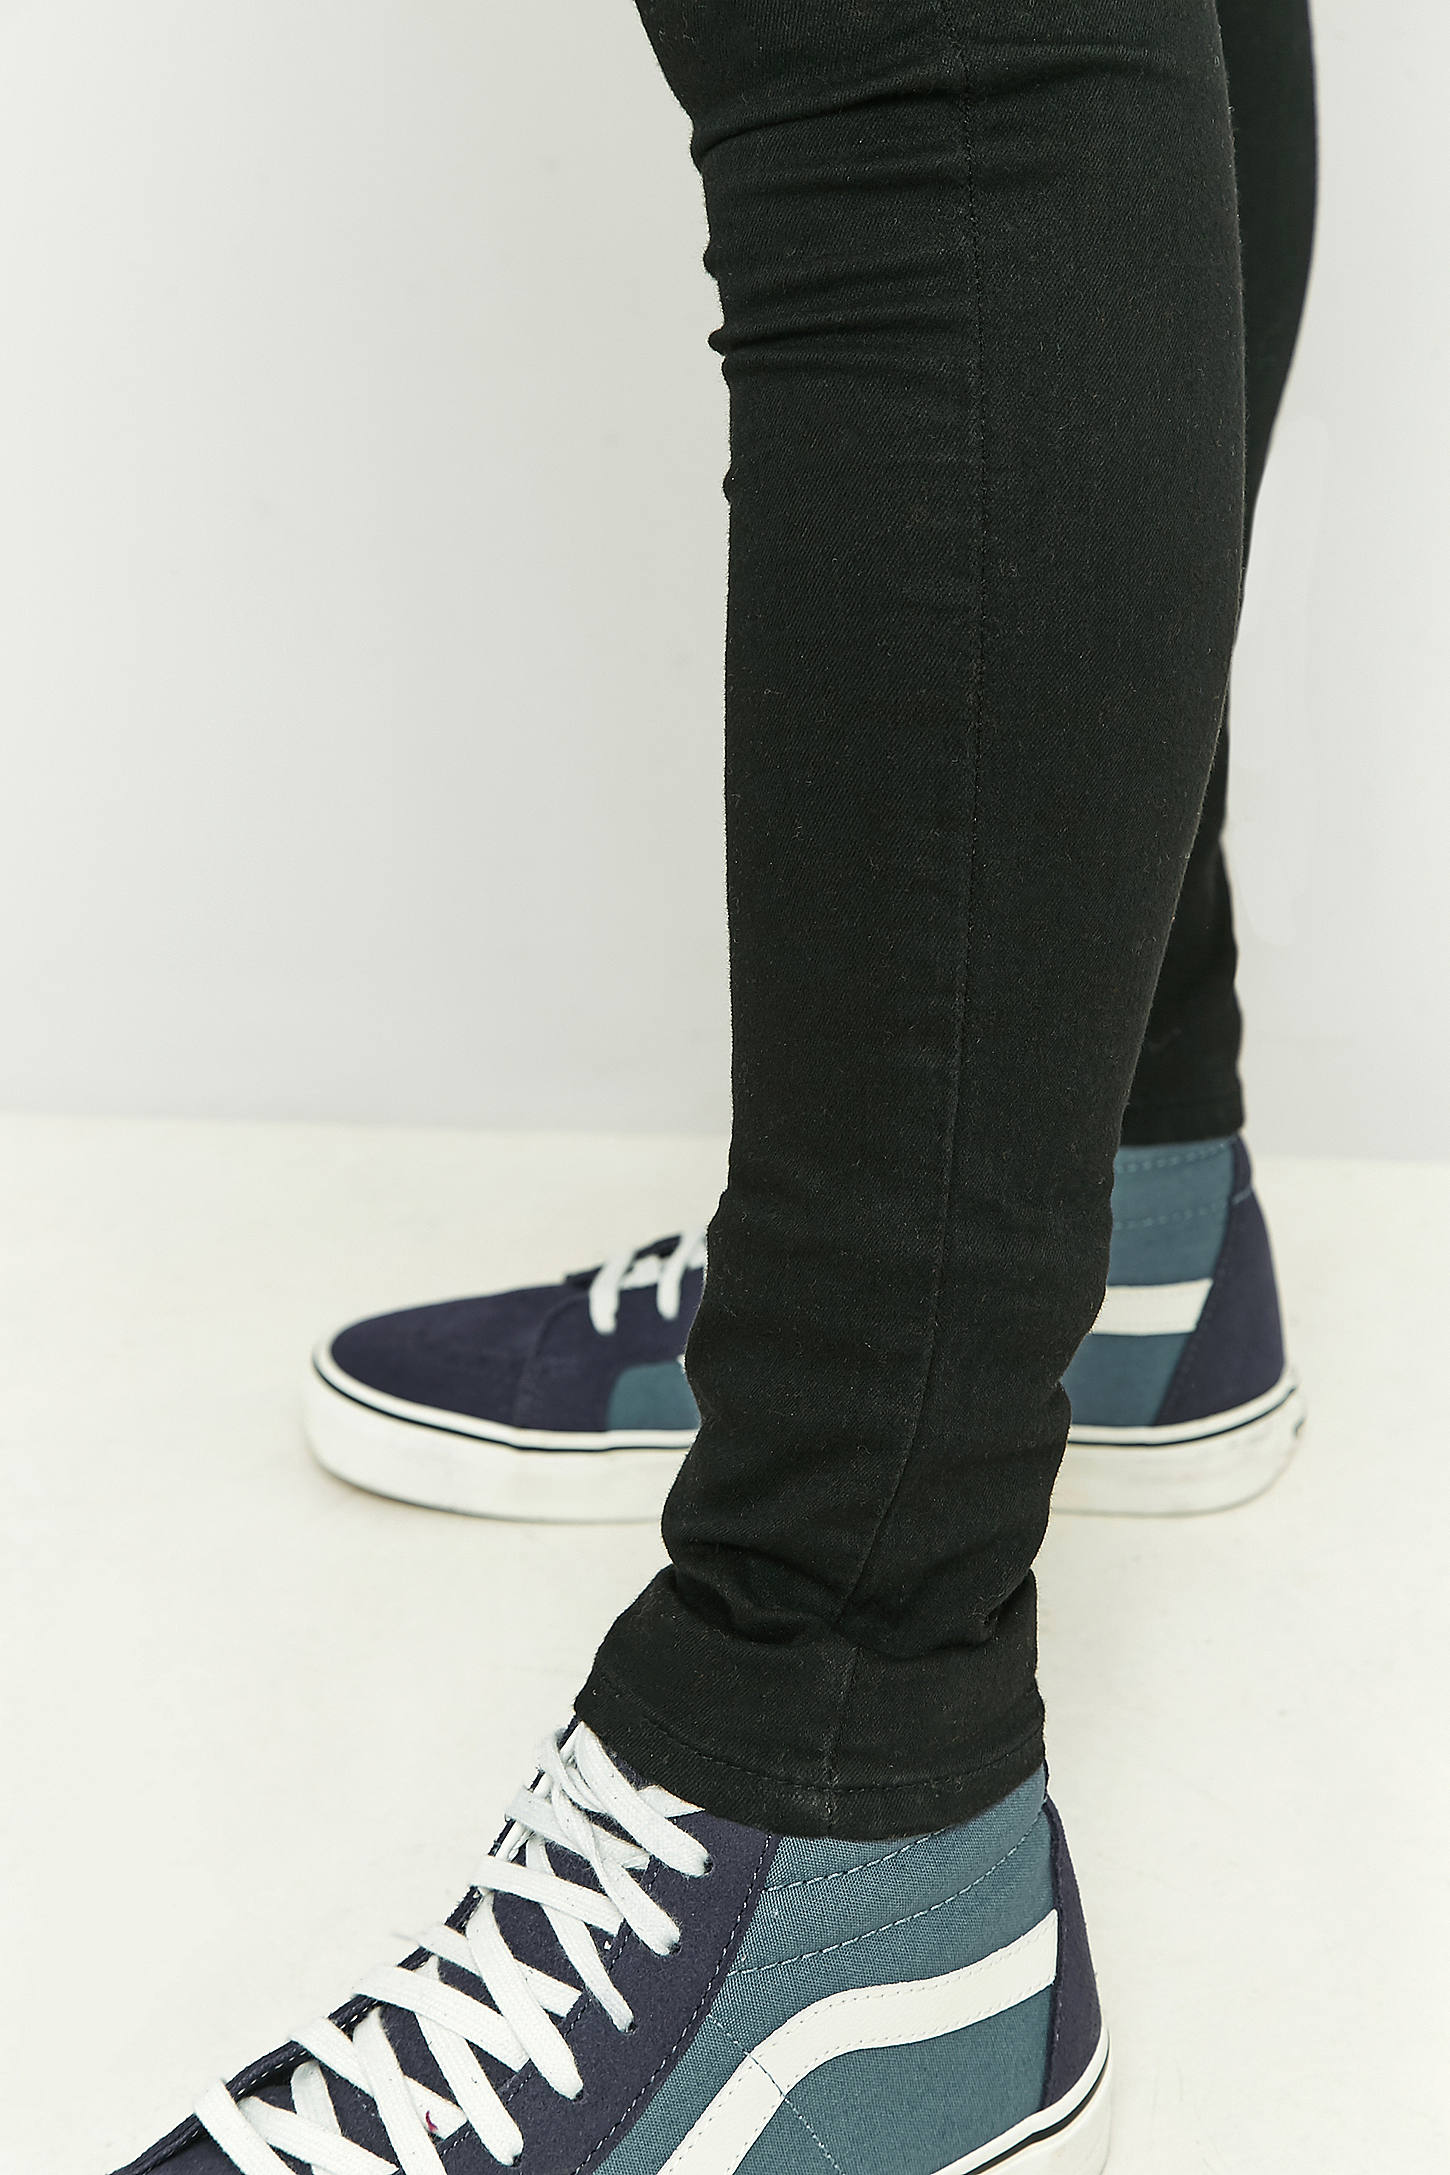 Cheap Monday Him Spray Black Skinny Jeans | Urban Outfitters